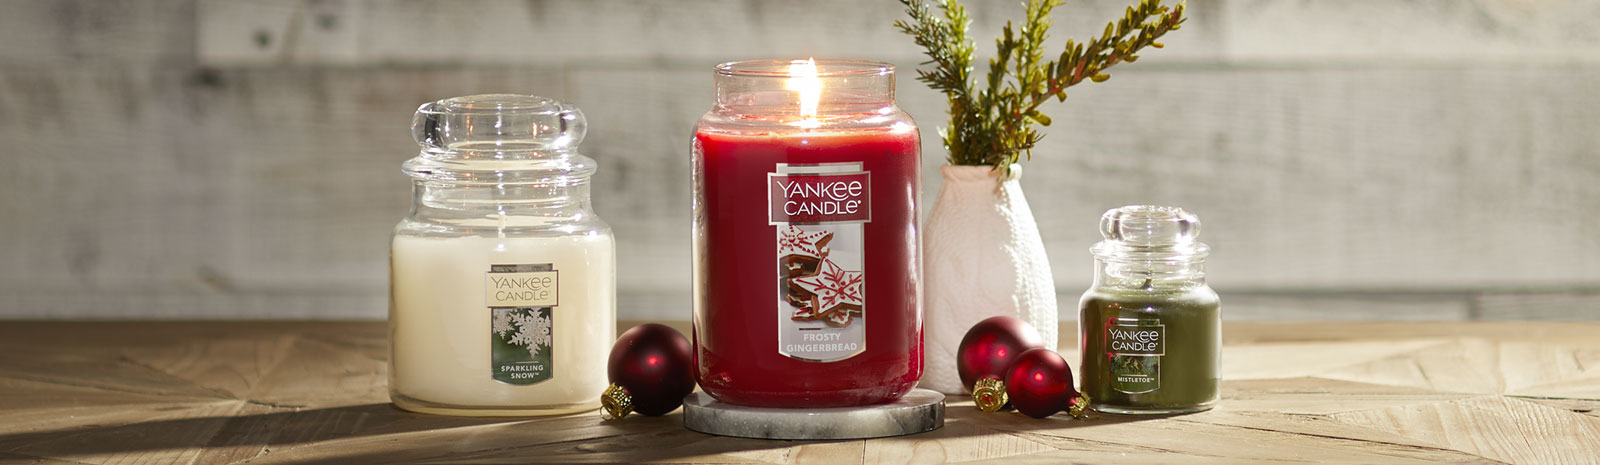 Classic Jar Candles - Yankee Candle®